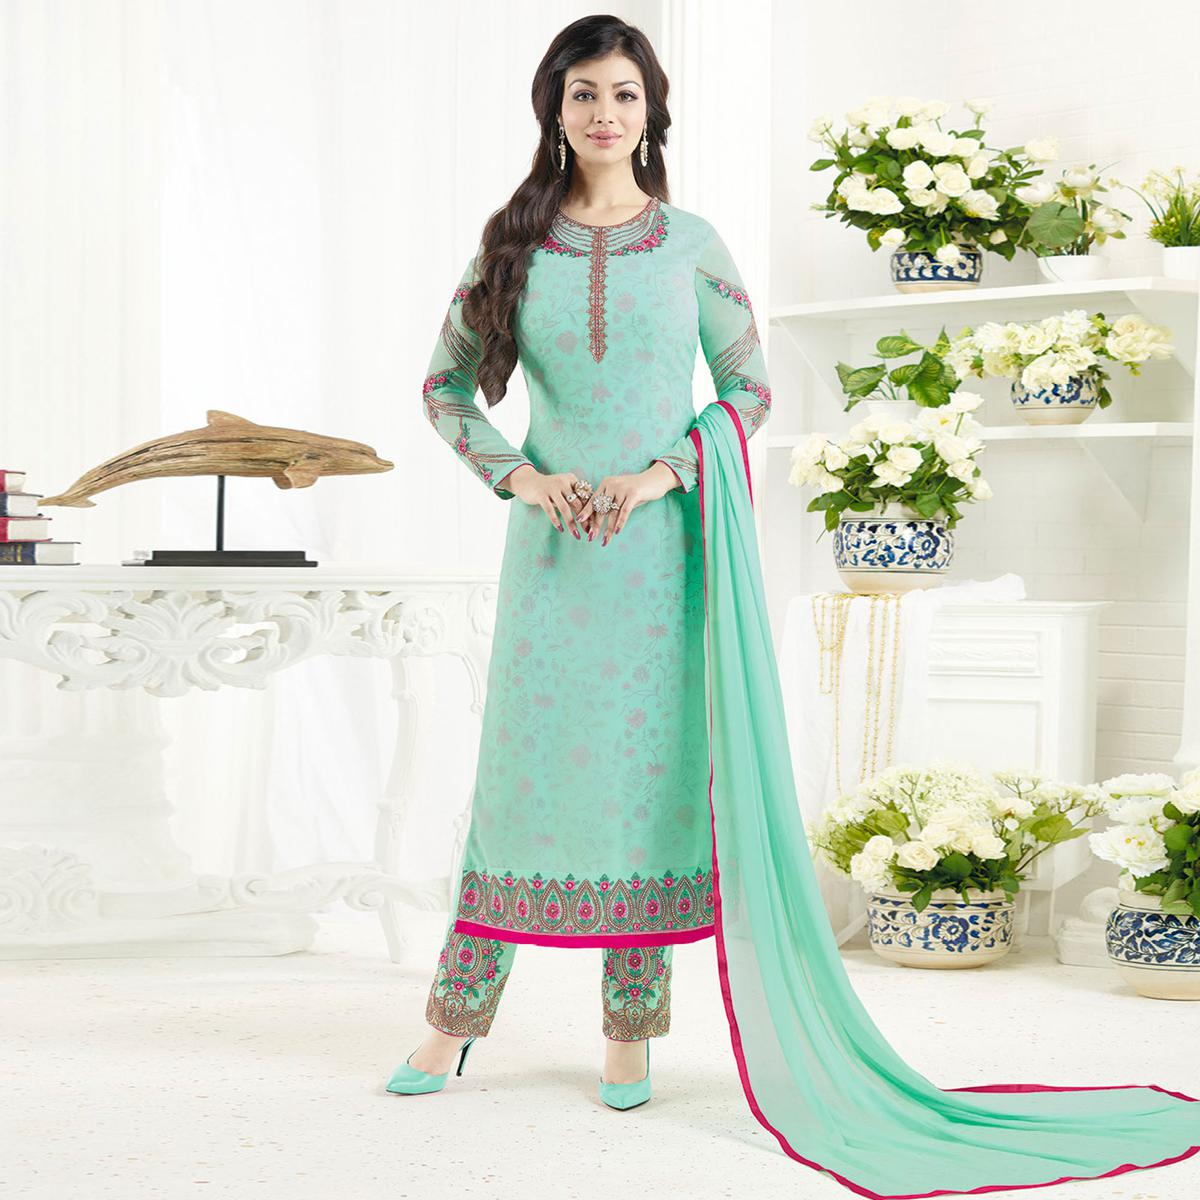 170c36c1e63a3 Buy Capricious Aqua Blue Colored Embroidered Party Wear Georgette Salwar  Suit for women s online India